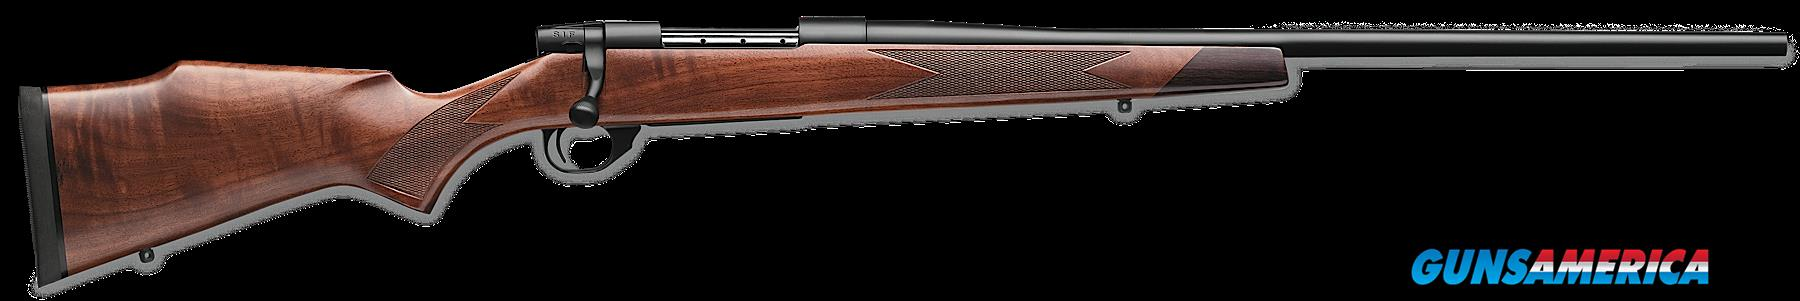 "Weatherby VDT222RR4O Vanguard Series 2 Sporter Bolt 22-250 Remington 24"" 5+1 Walnut Stk Blued  Guns > Rifles > Weatherby Rifles > Sporting"